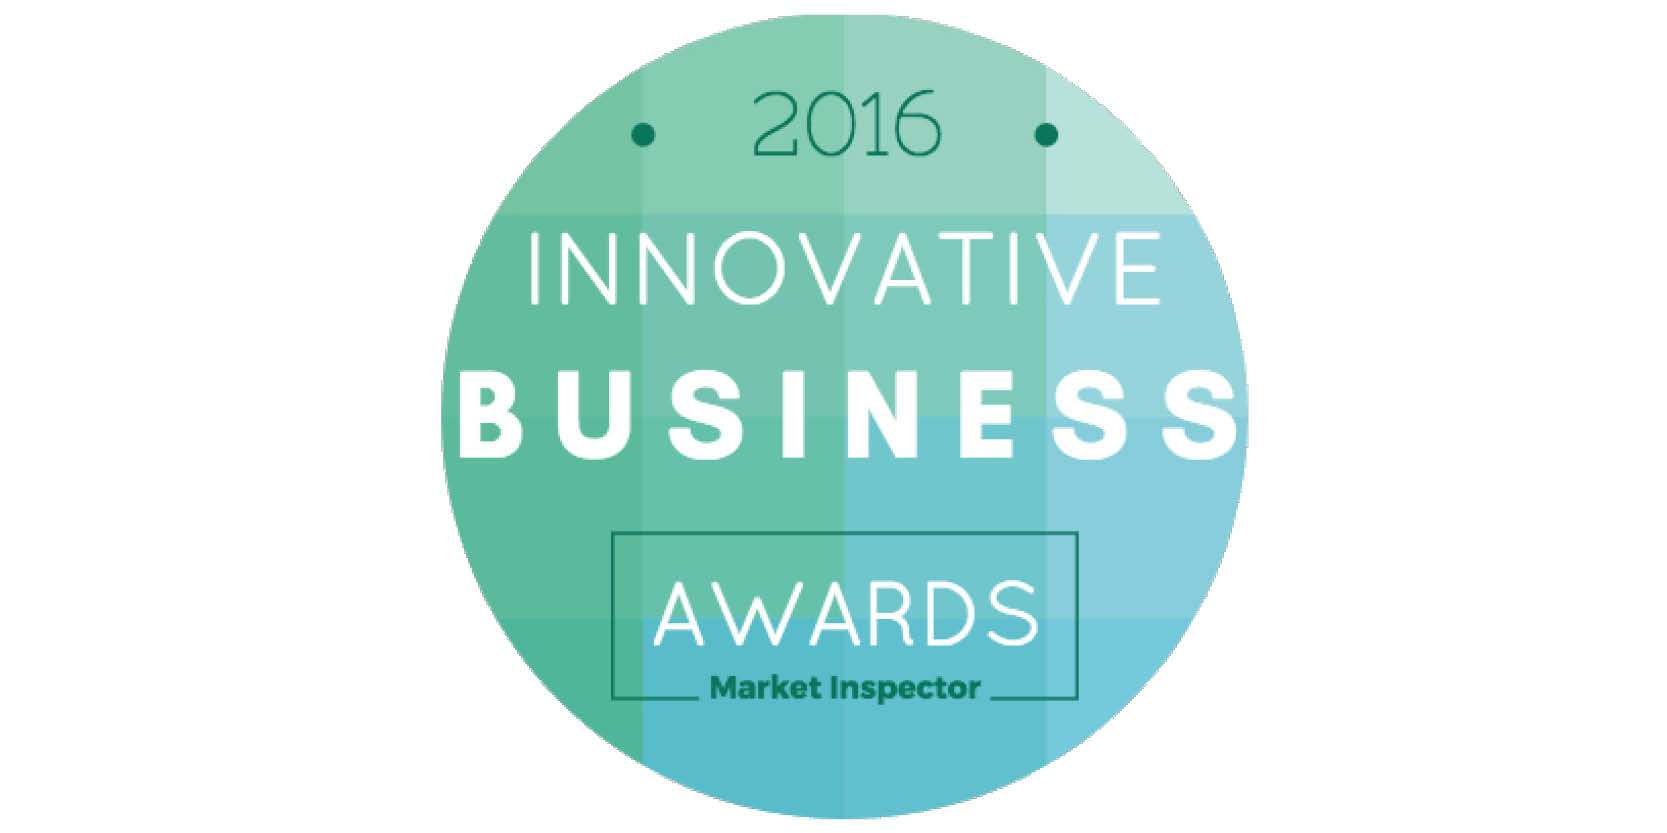 Market Inspector: Innovative Business Awards 2016